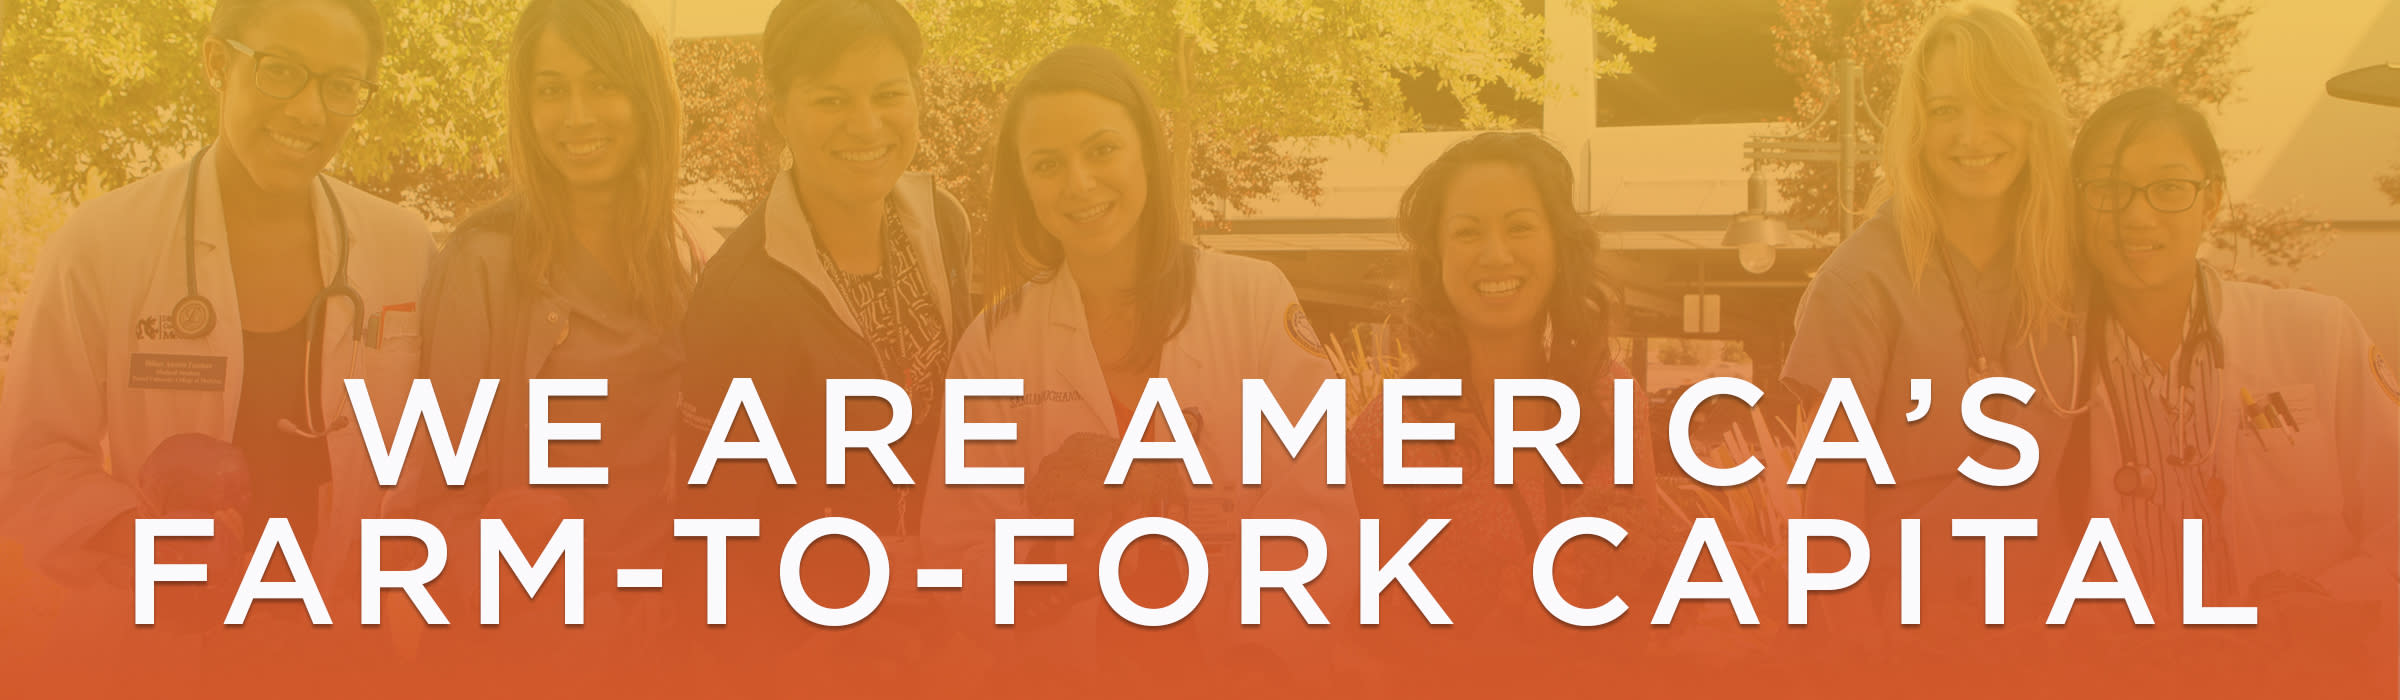 We Are Farm-to-Fork